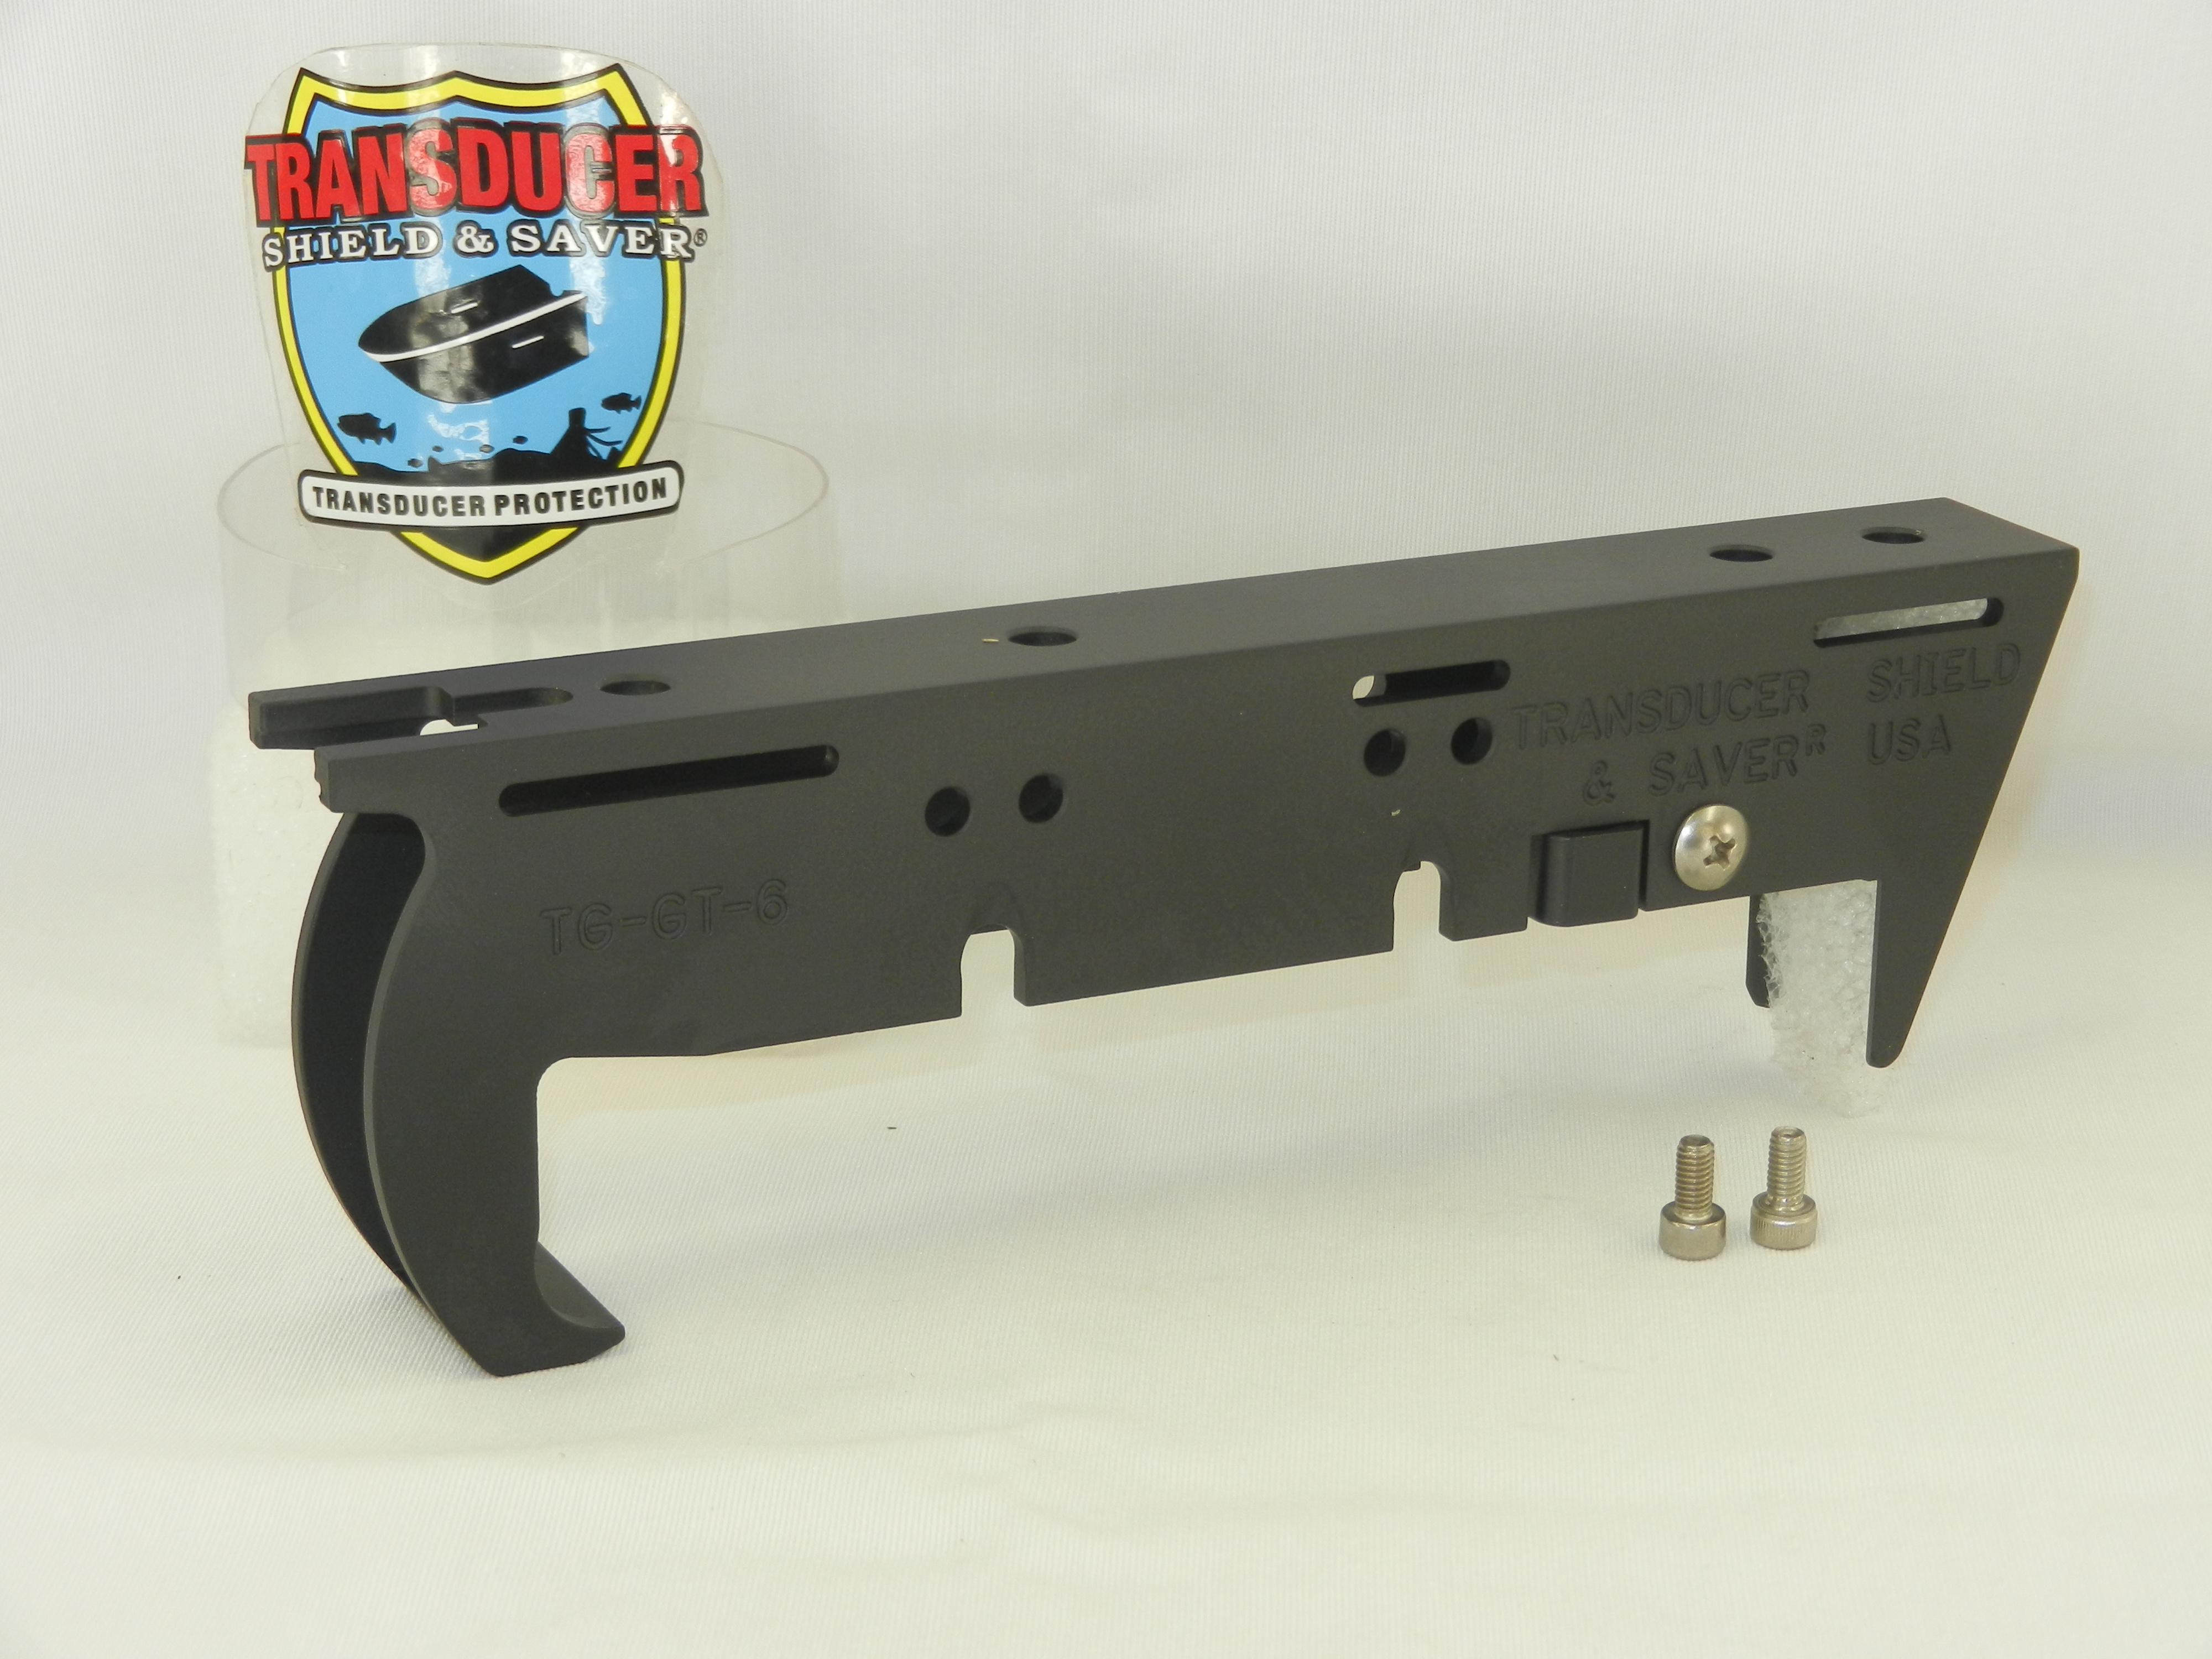 TG-GT-6 to fit Garmin DownVü/SideVü xDucer GT22 or GT52 for Trolling Motor,  Jack Plate or Set Back installation